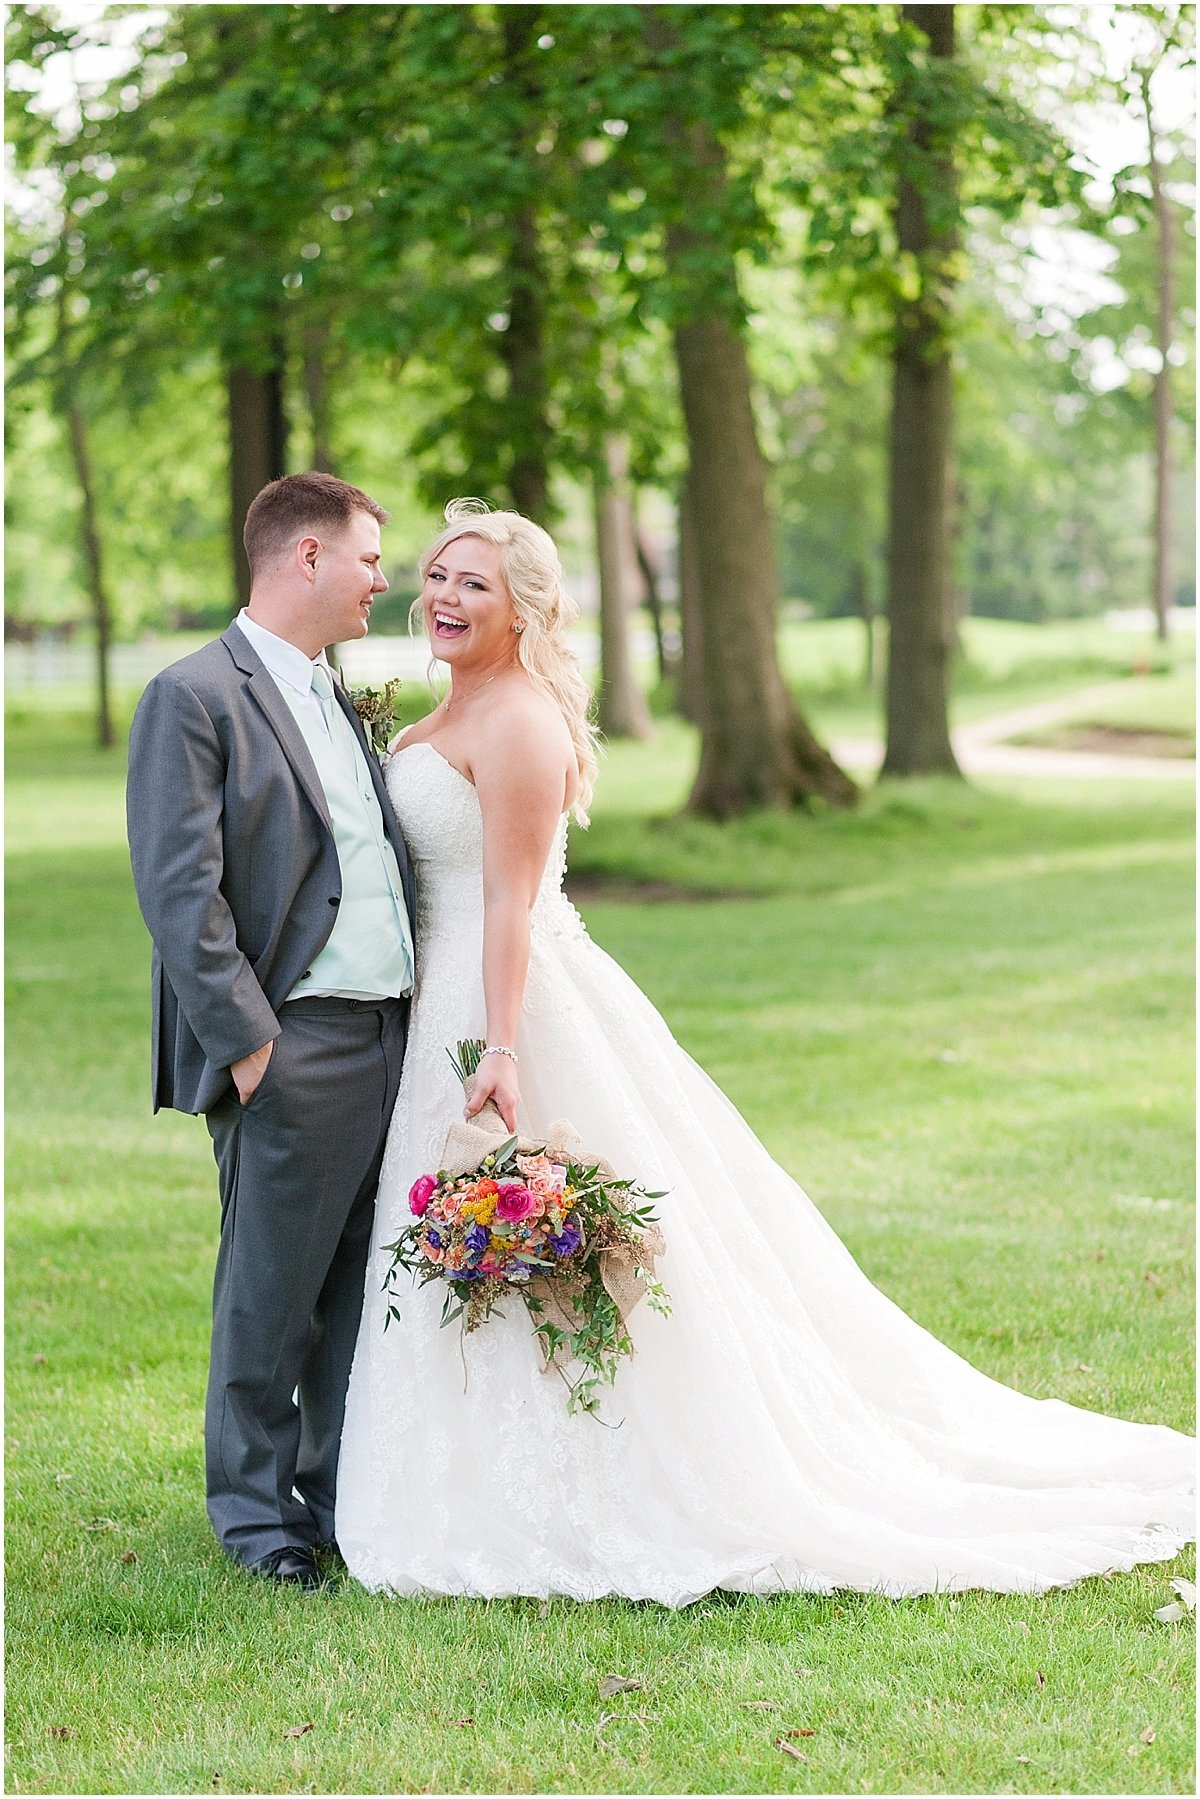 Elegant Heritage Golf Club wedding in Hilliard Ohio Outdoor Wedding Pipers Photography_0071